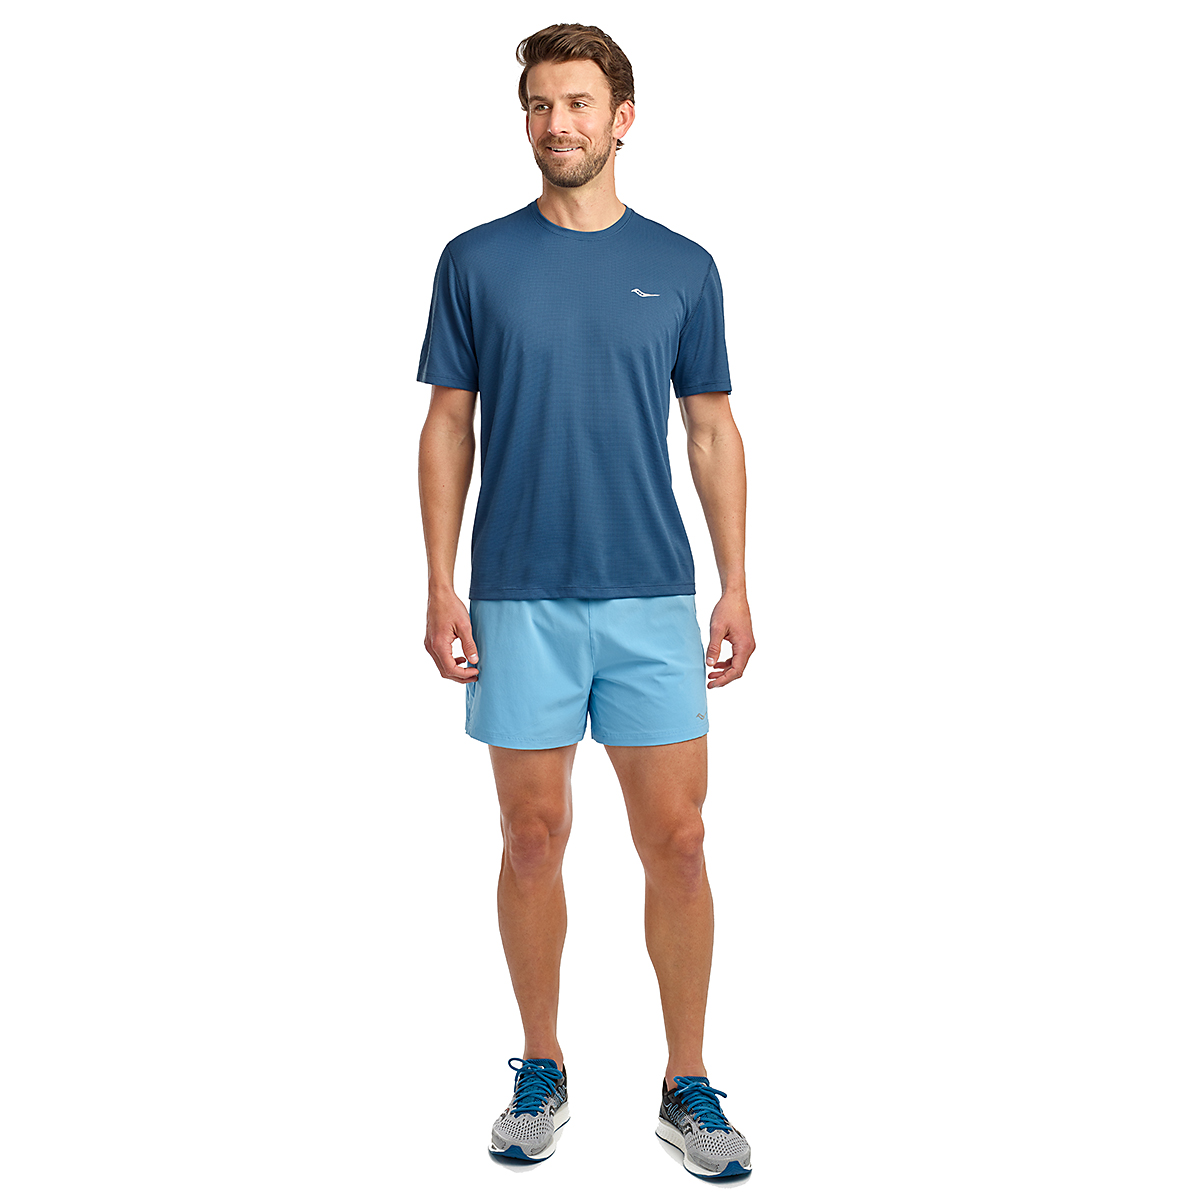 Men's Saucony Stopwatch Short Sleeve - Color: Ensign Blue - Size: S, Ensign Blue, large, image 3